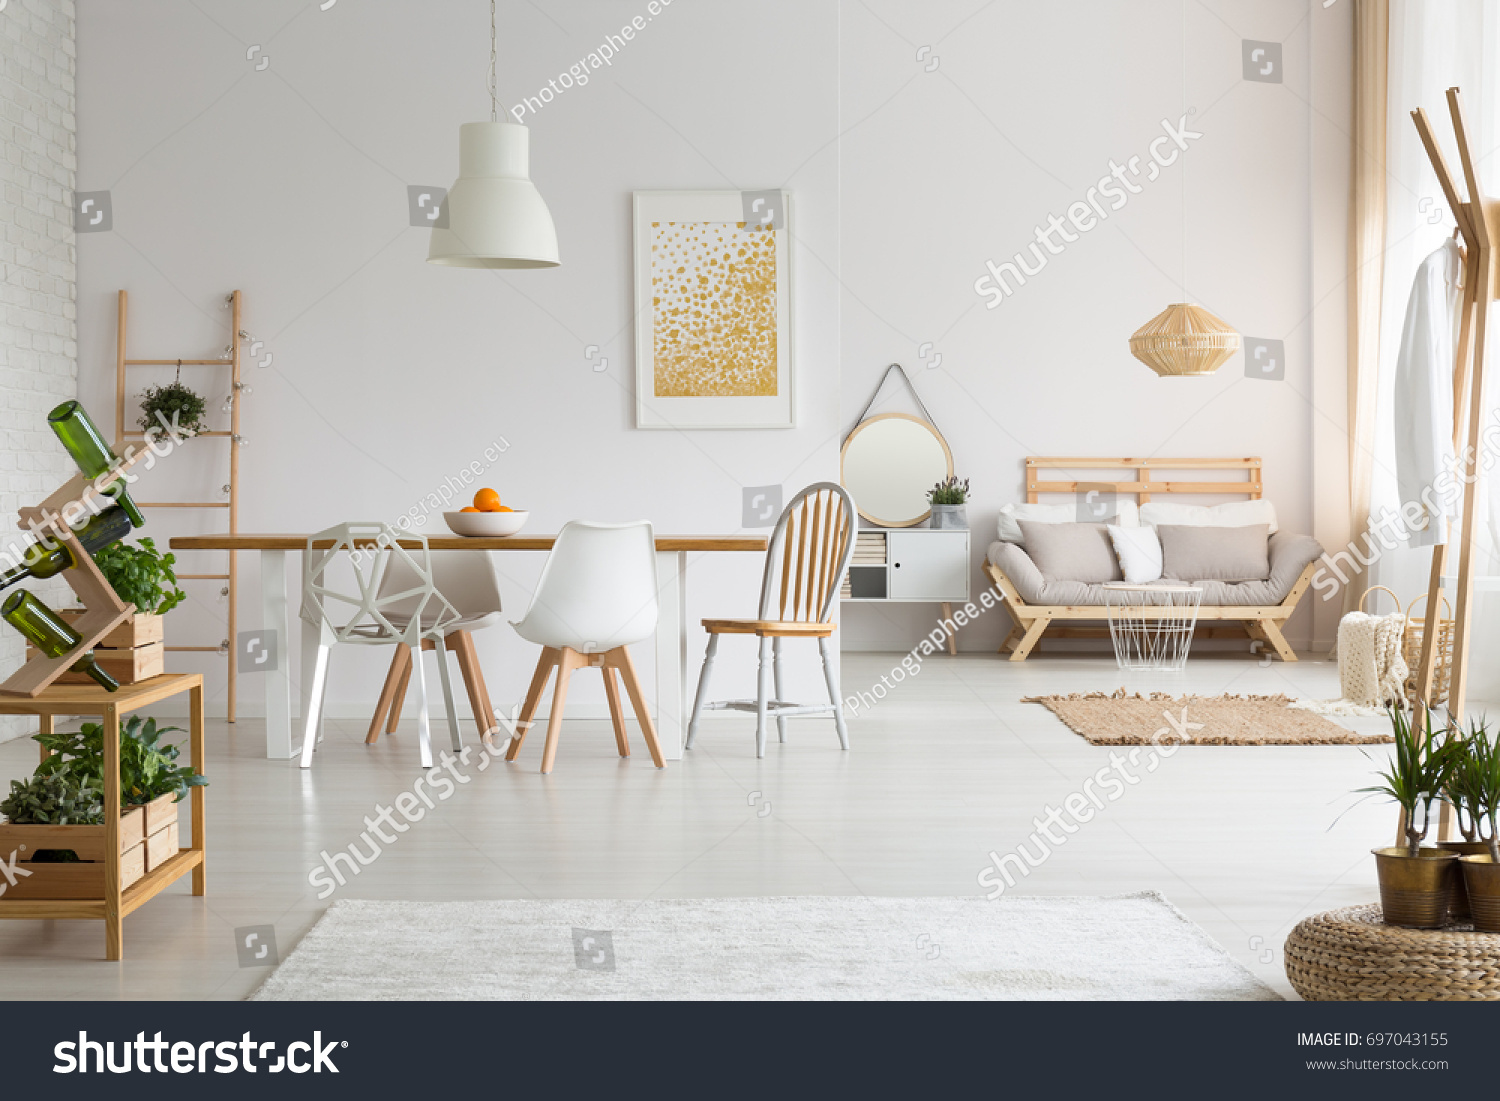 Modern Dining Space Simple Living Room Stock Photo (Safe to Use ...